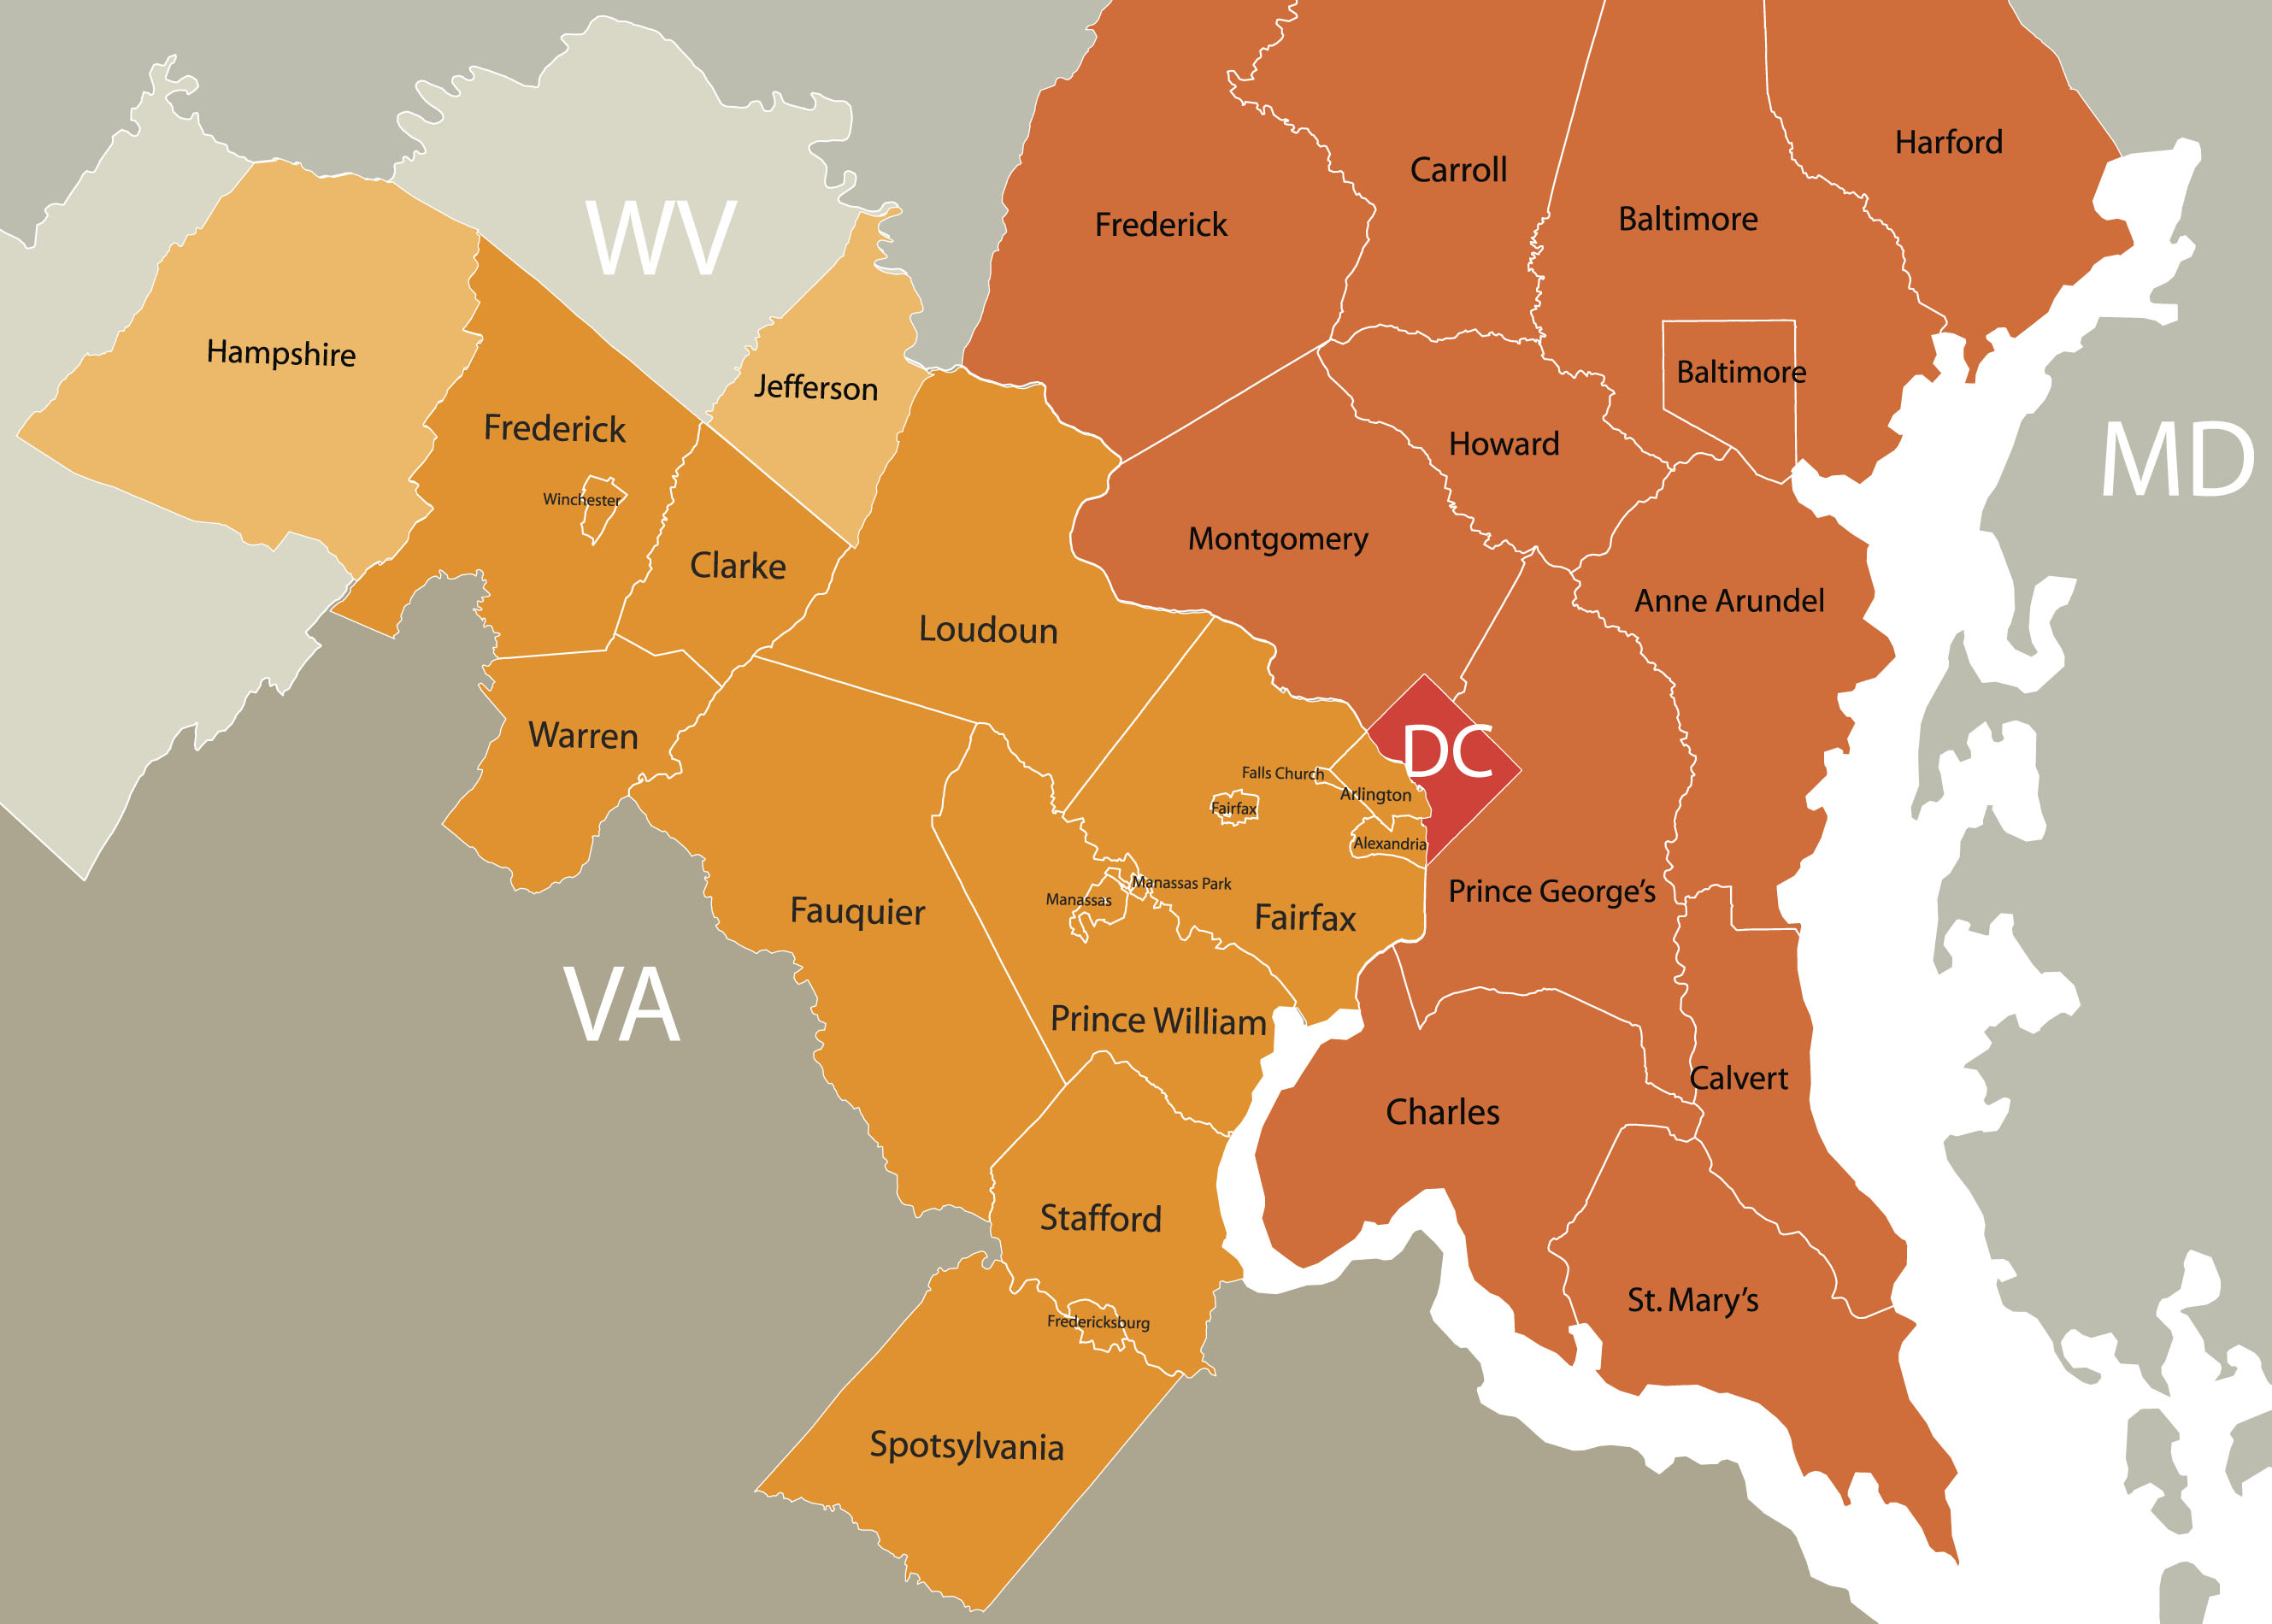 address mapping tool with Area Information Washington Dc Maryland Virginia on Building General Data Protection Regulation Gdpr Implementation Plan In 10 Steps 230475 also The Need For Gis together with Ipam Spm Plugin additionally Business Retentionexpansion besides Houston Zip Code Map Printable.